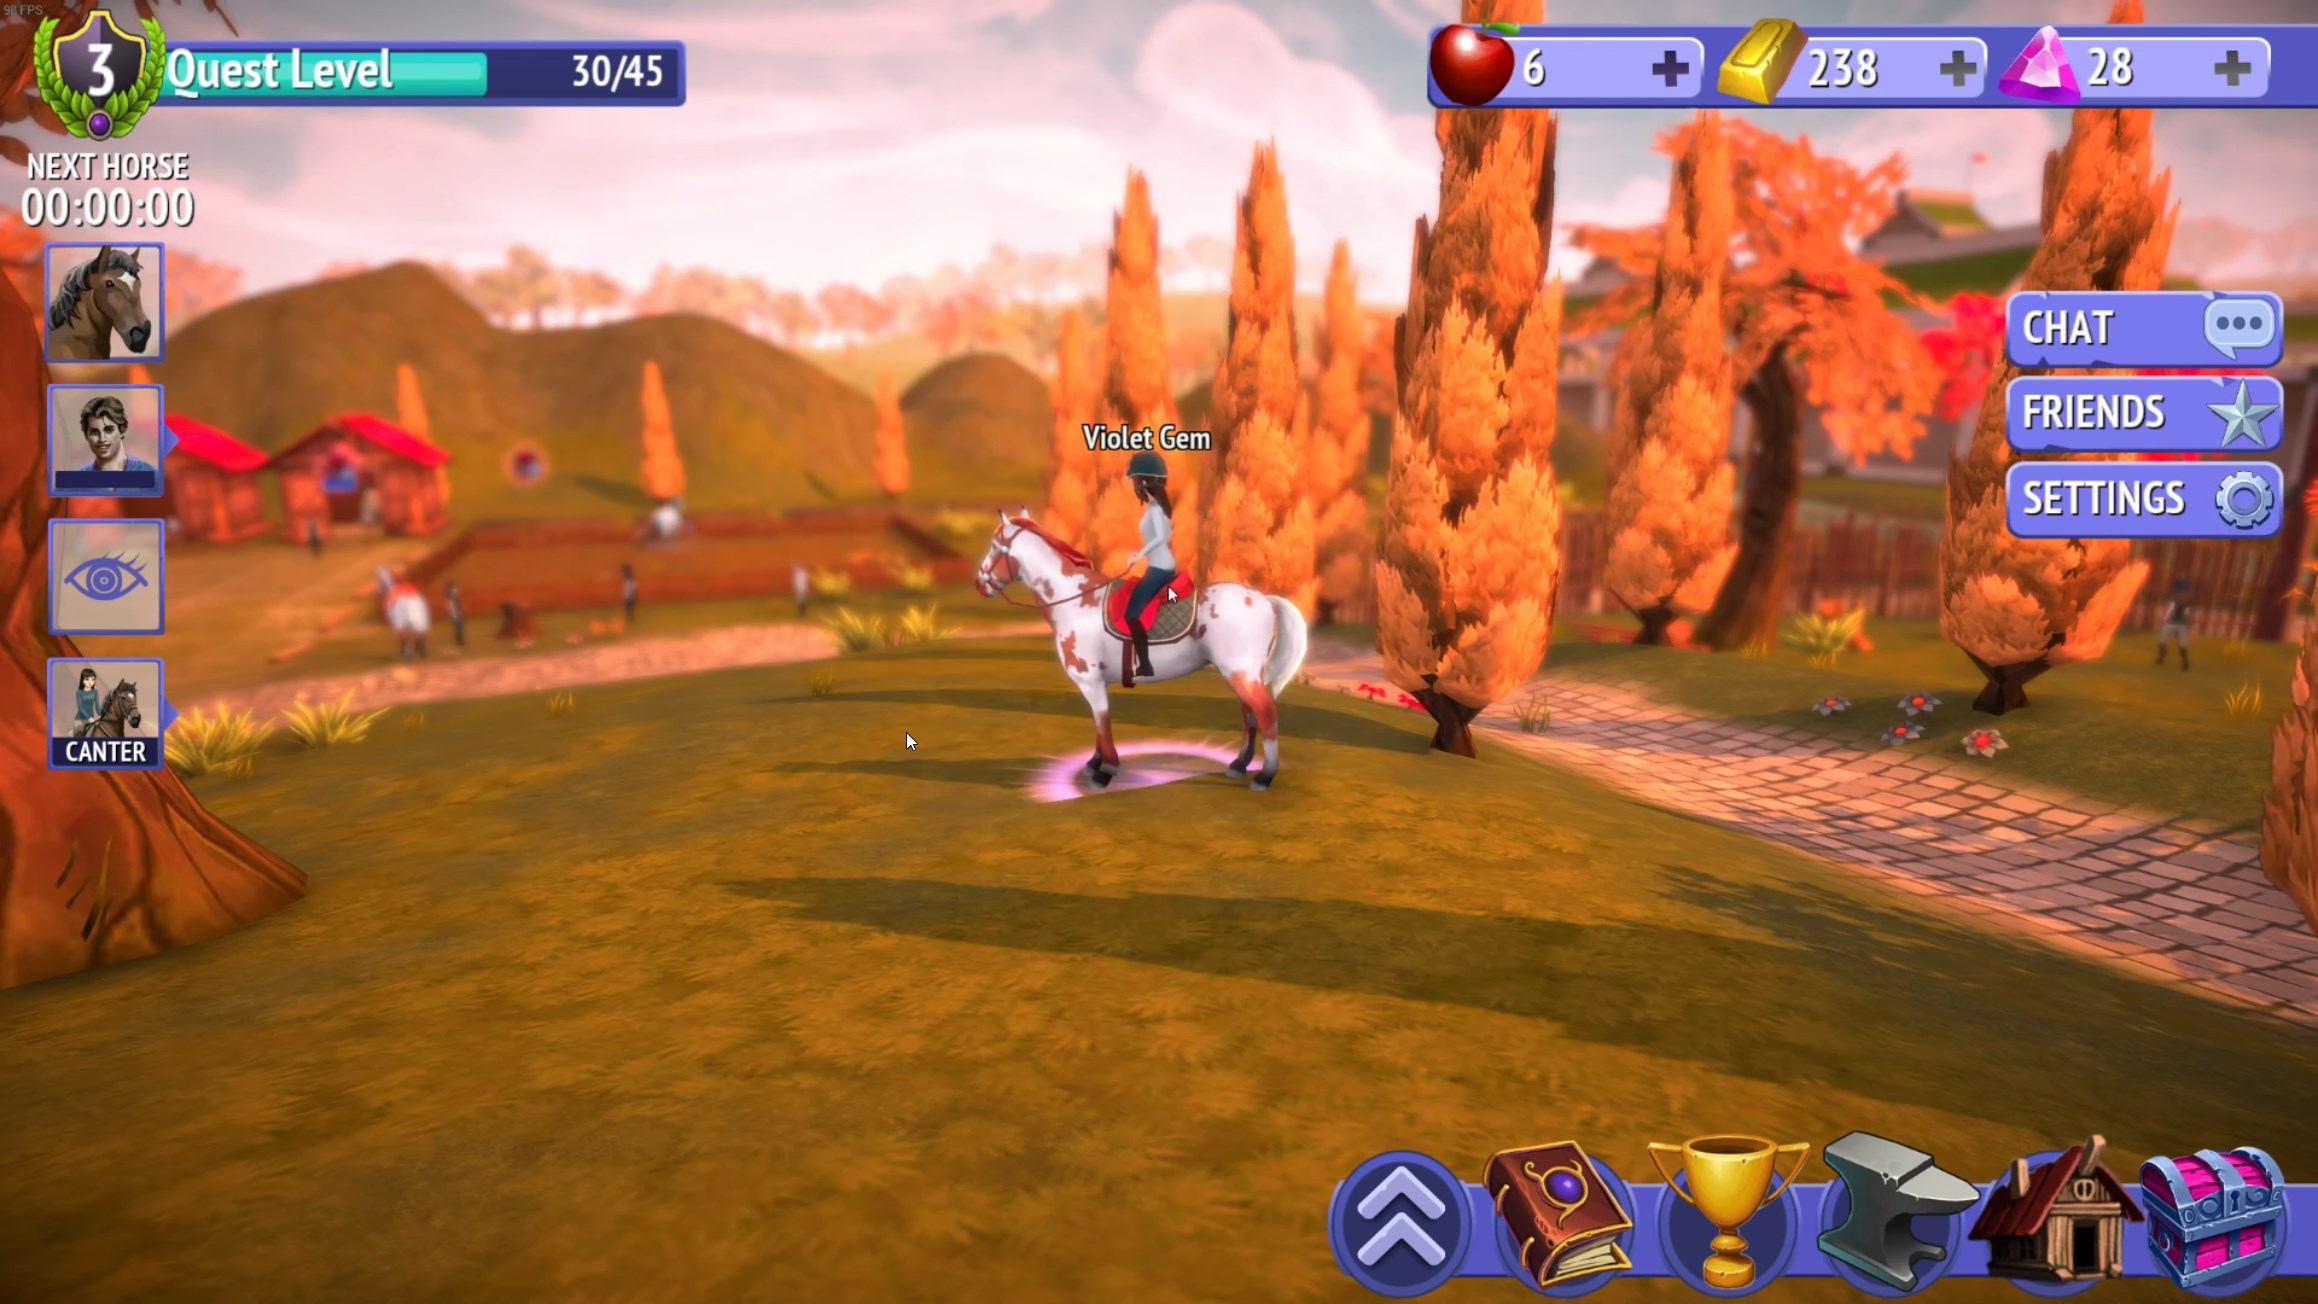 Horse Riding Tales — Cute Horses, Bad Interface and Excessive